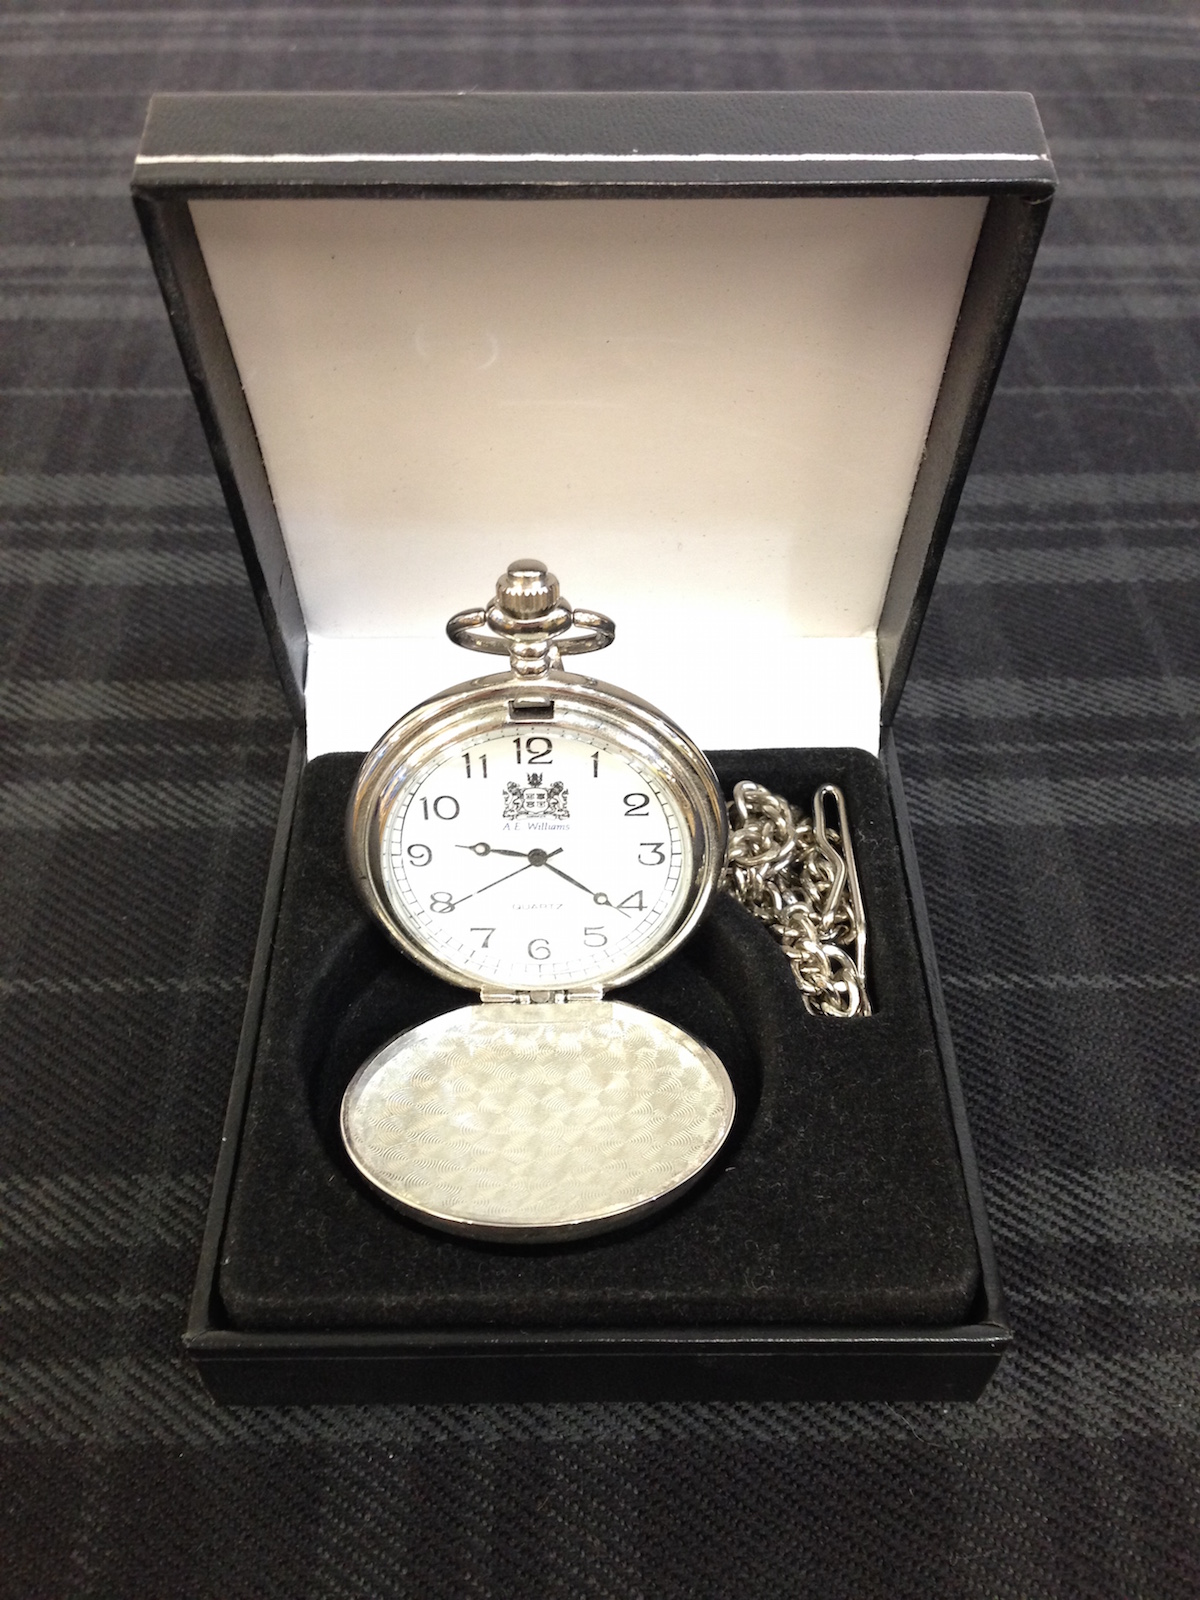 Wedding Gifts, Welsh Souvenirs > Watches > Fob Watch Groom, Best Man ...